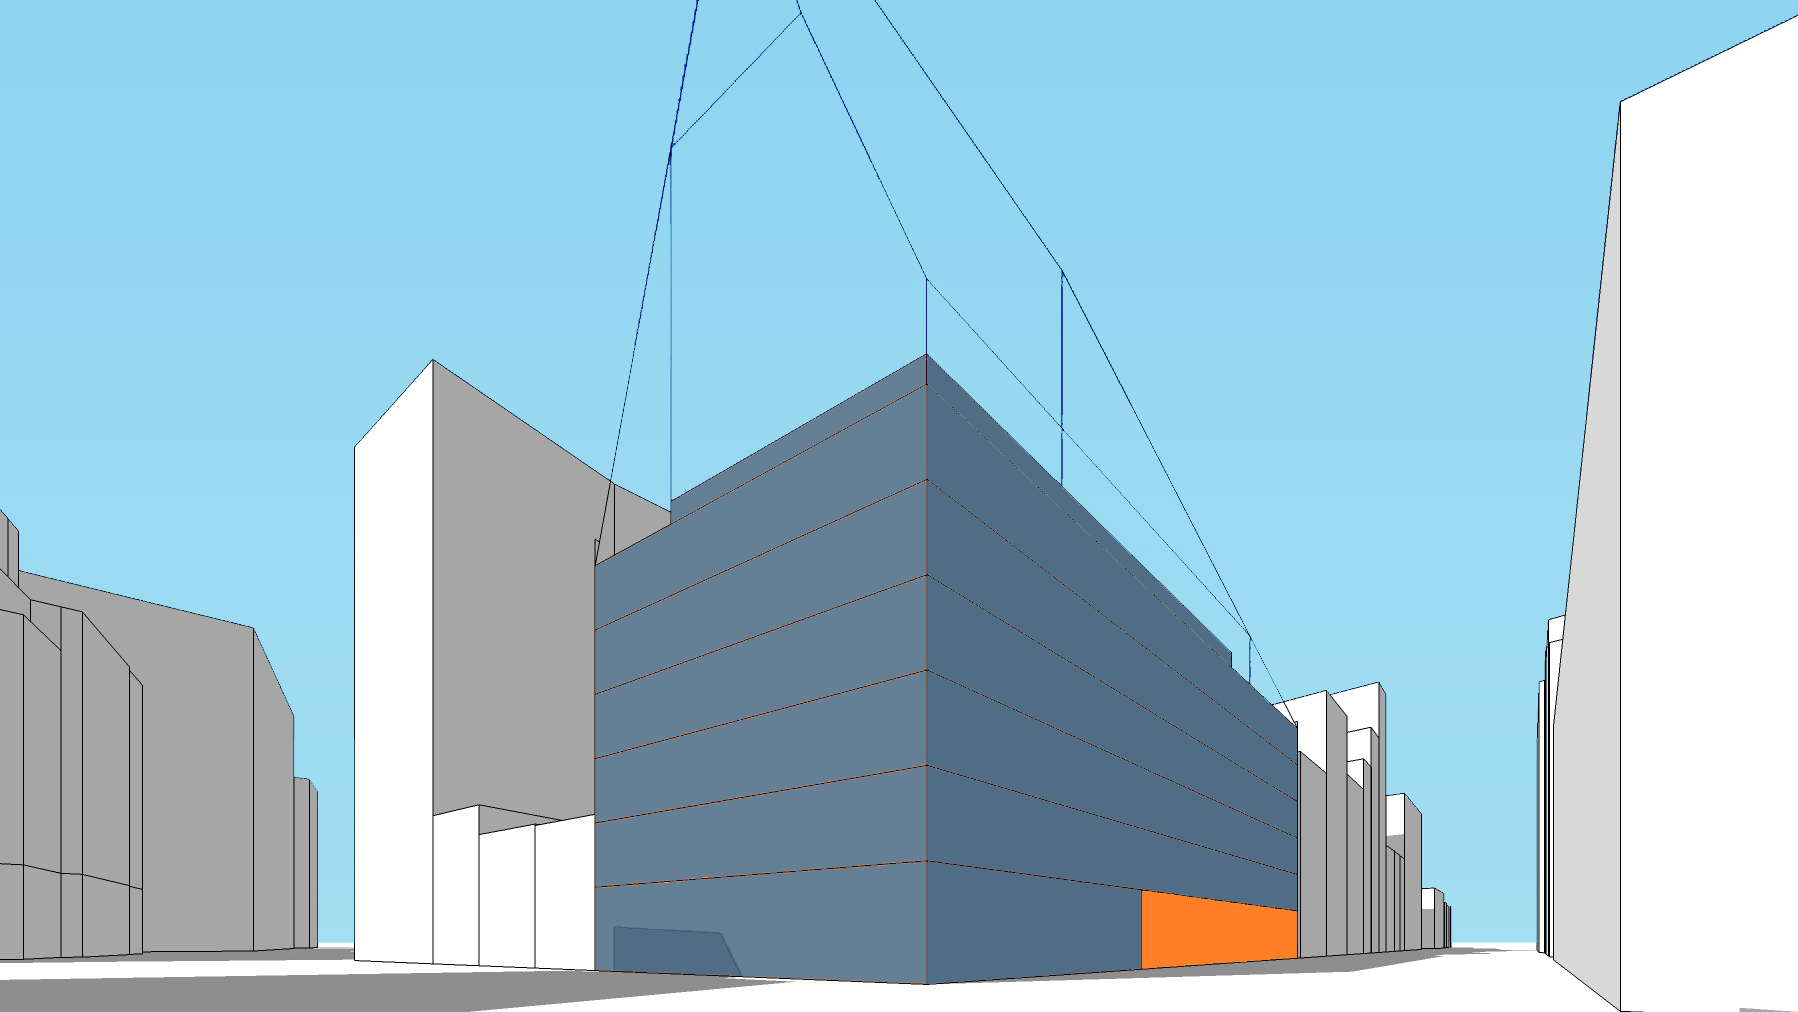 Diagram of the existing development of the Silicon Alley office building